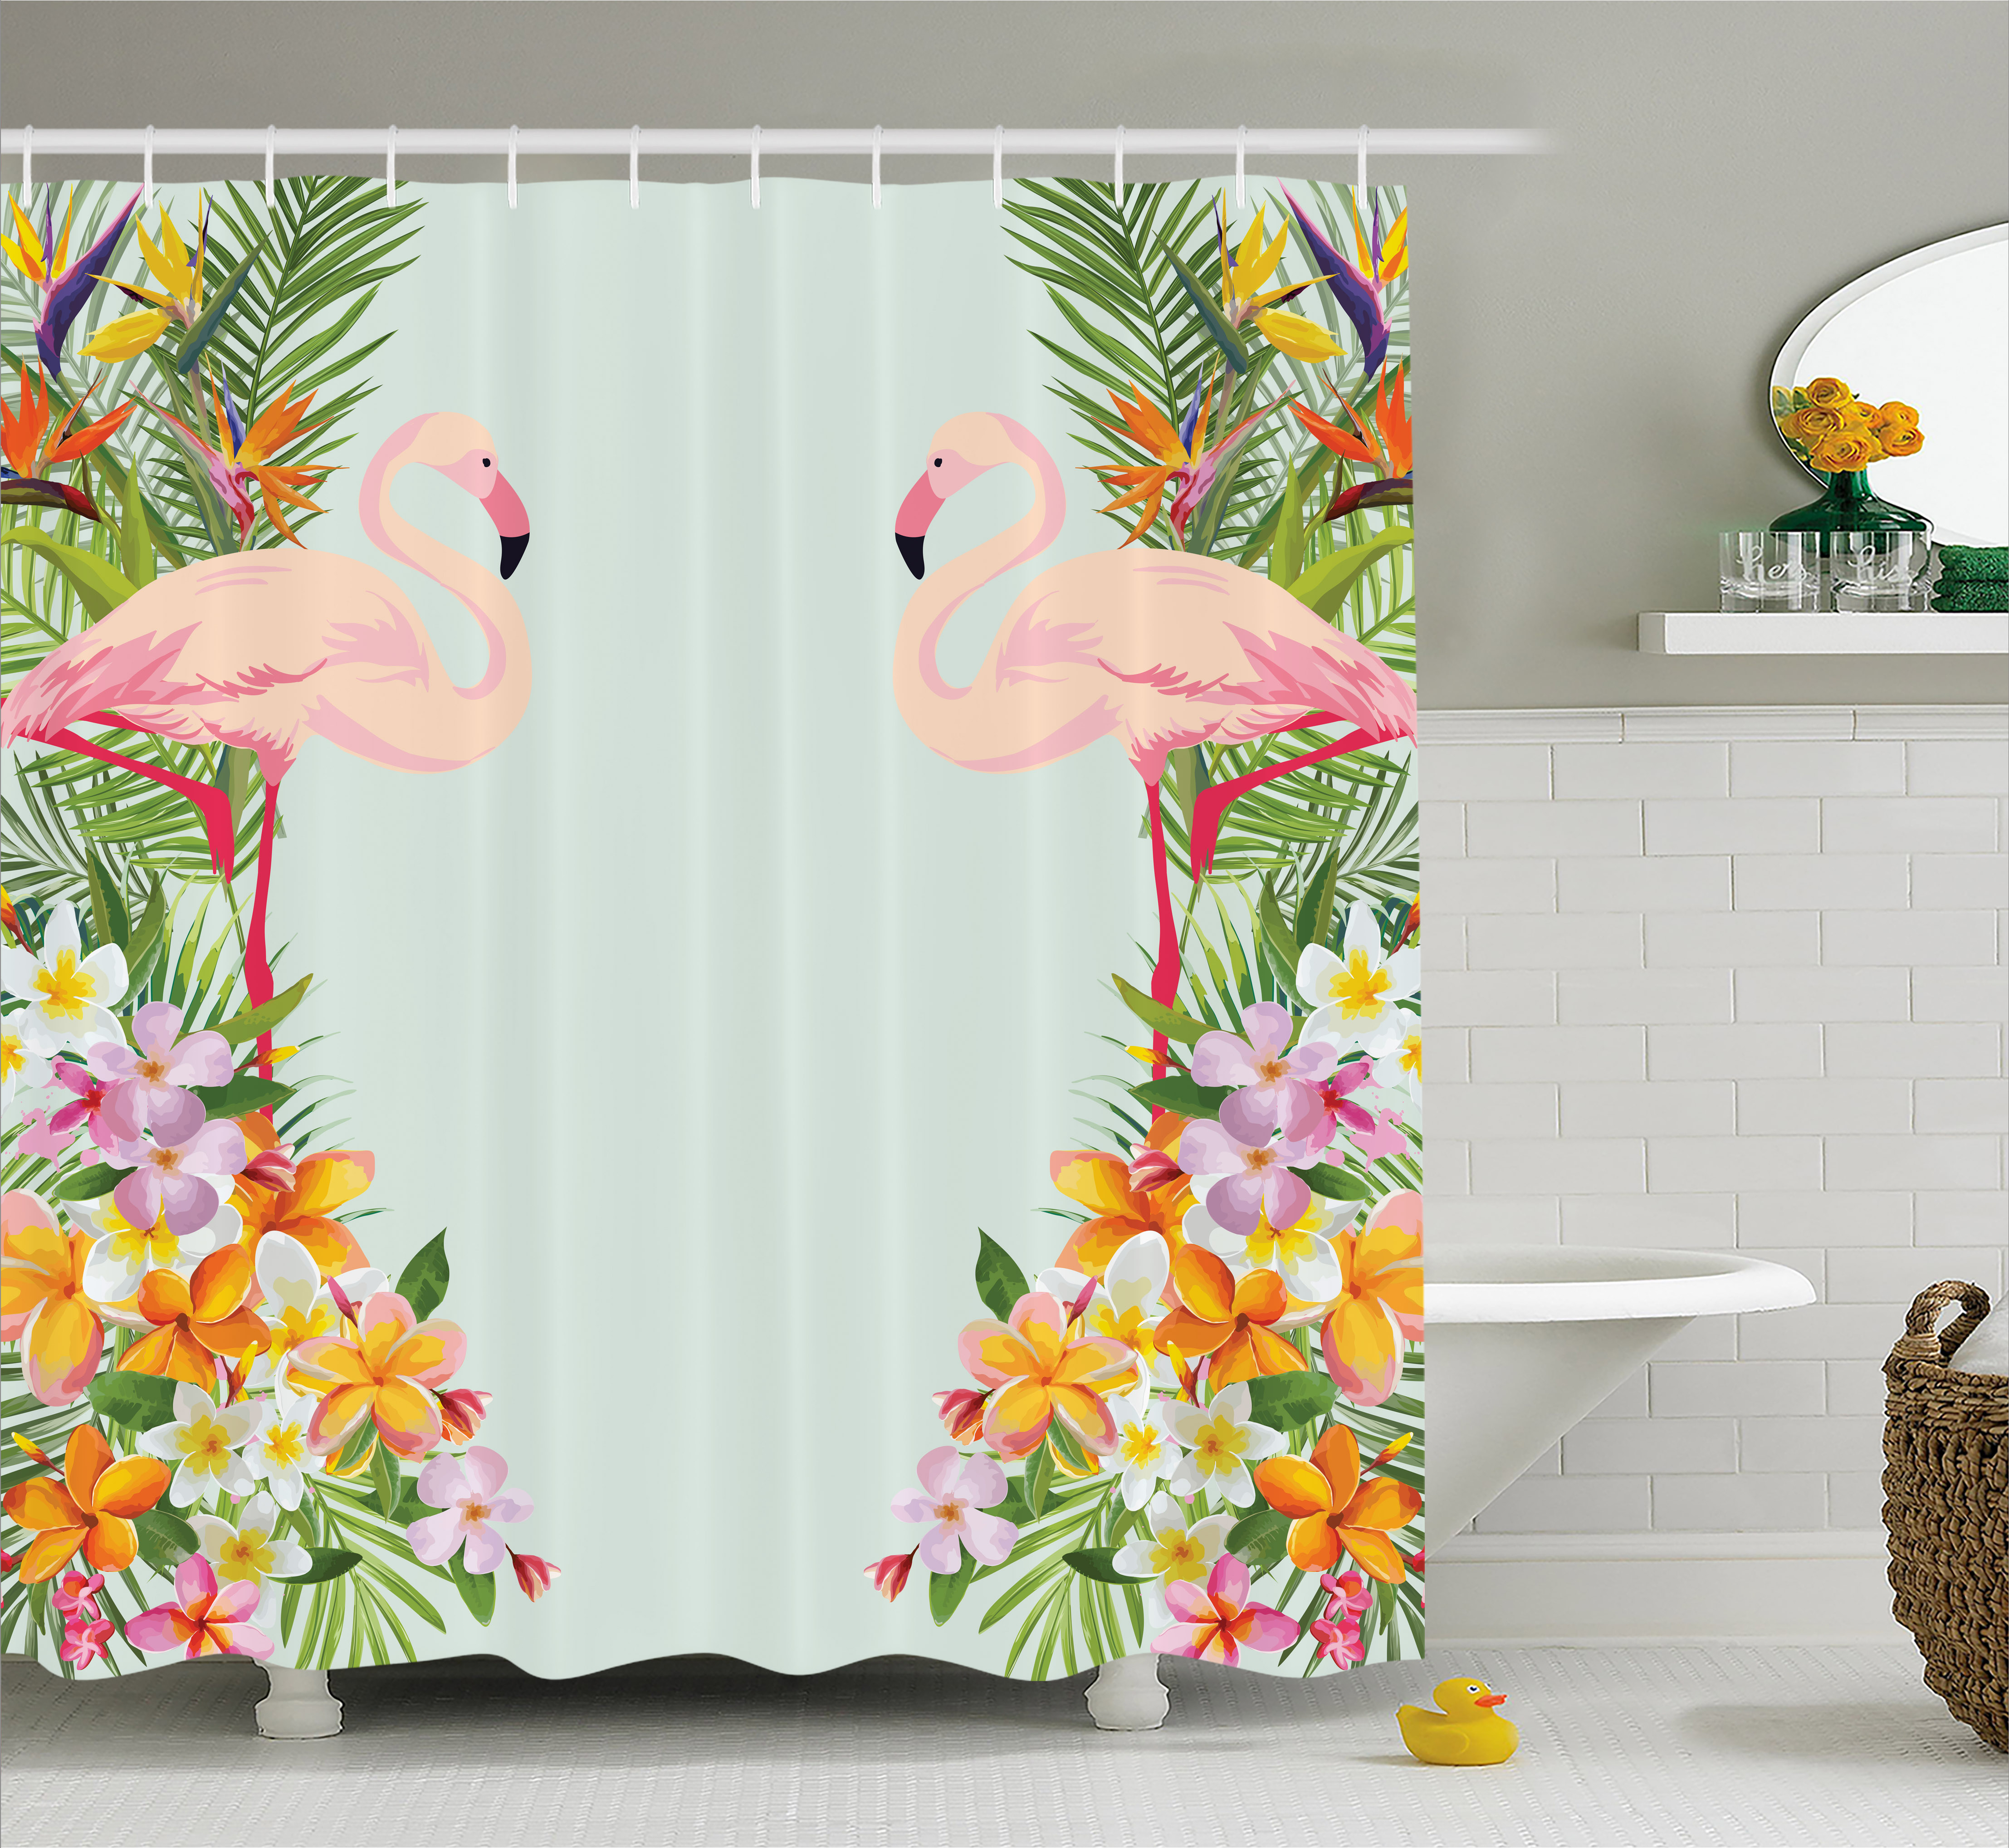 Floral Decor Shower Curtain, Flamingos Tropical Flowers and Flamingos Decorations for Home Print, Fabric Bathroom Set with Hooks, 69W X 70L Inches, Baby Blue and Orange, by Ambesonne